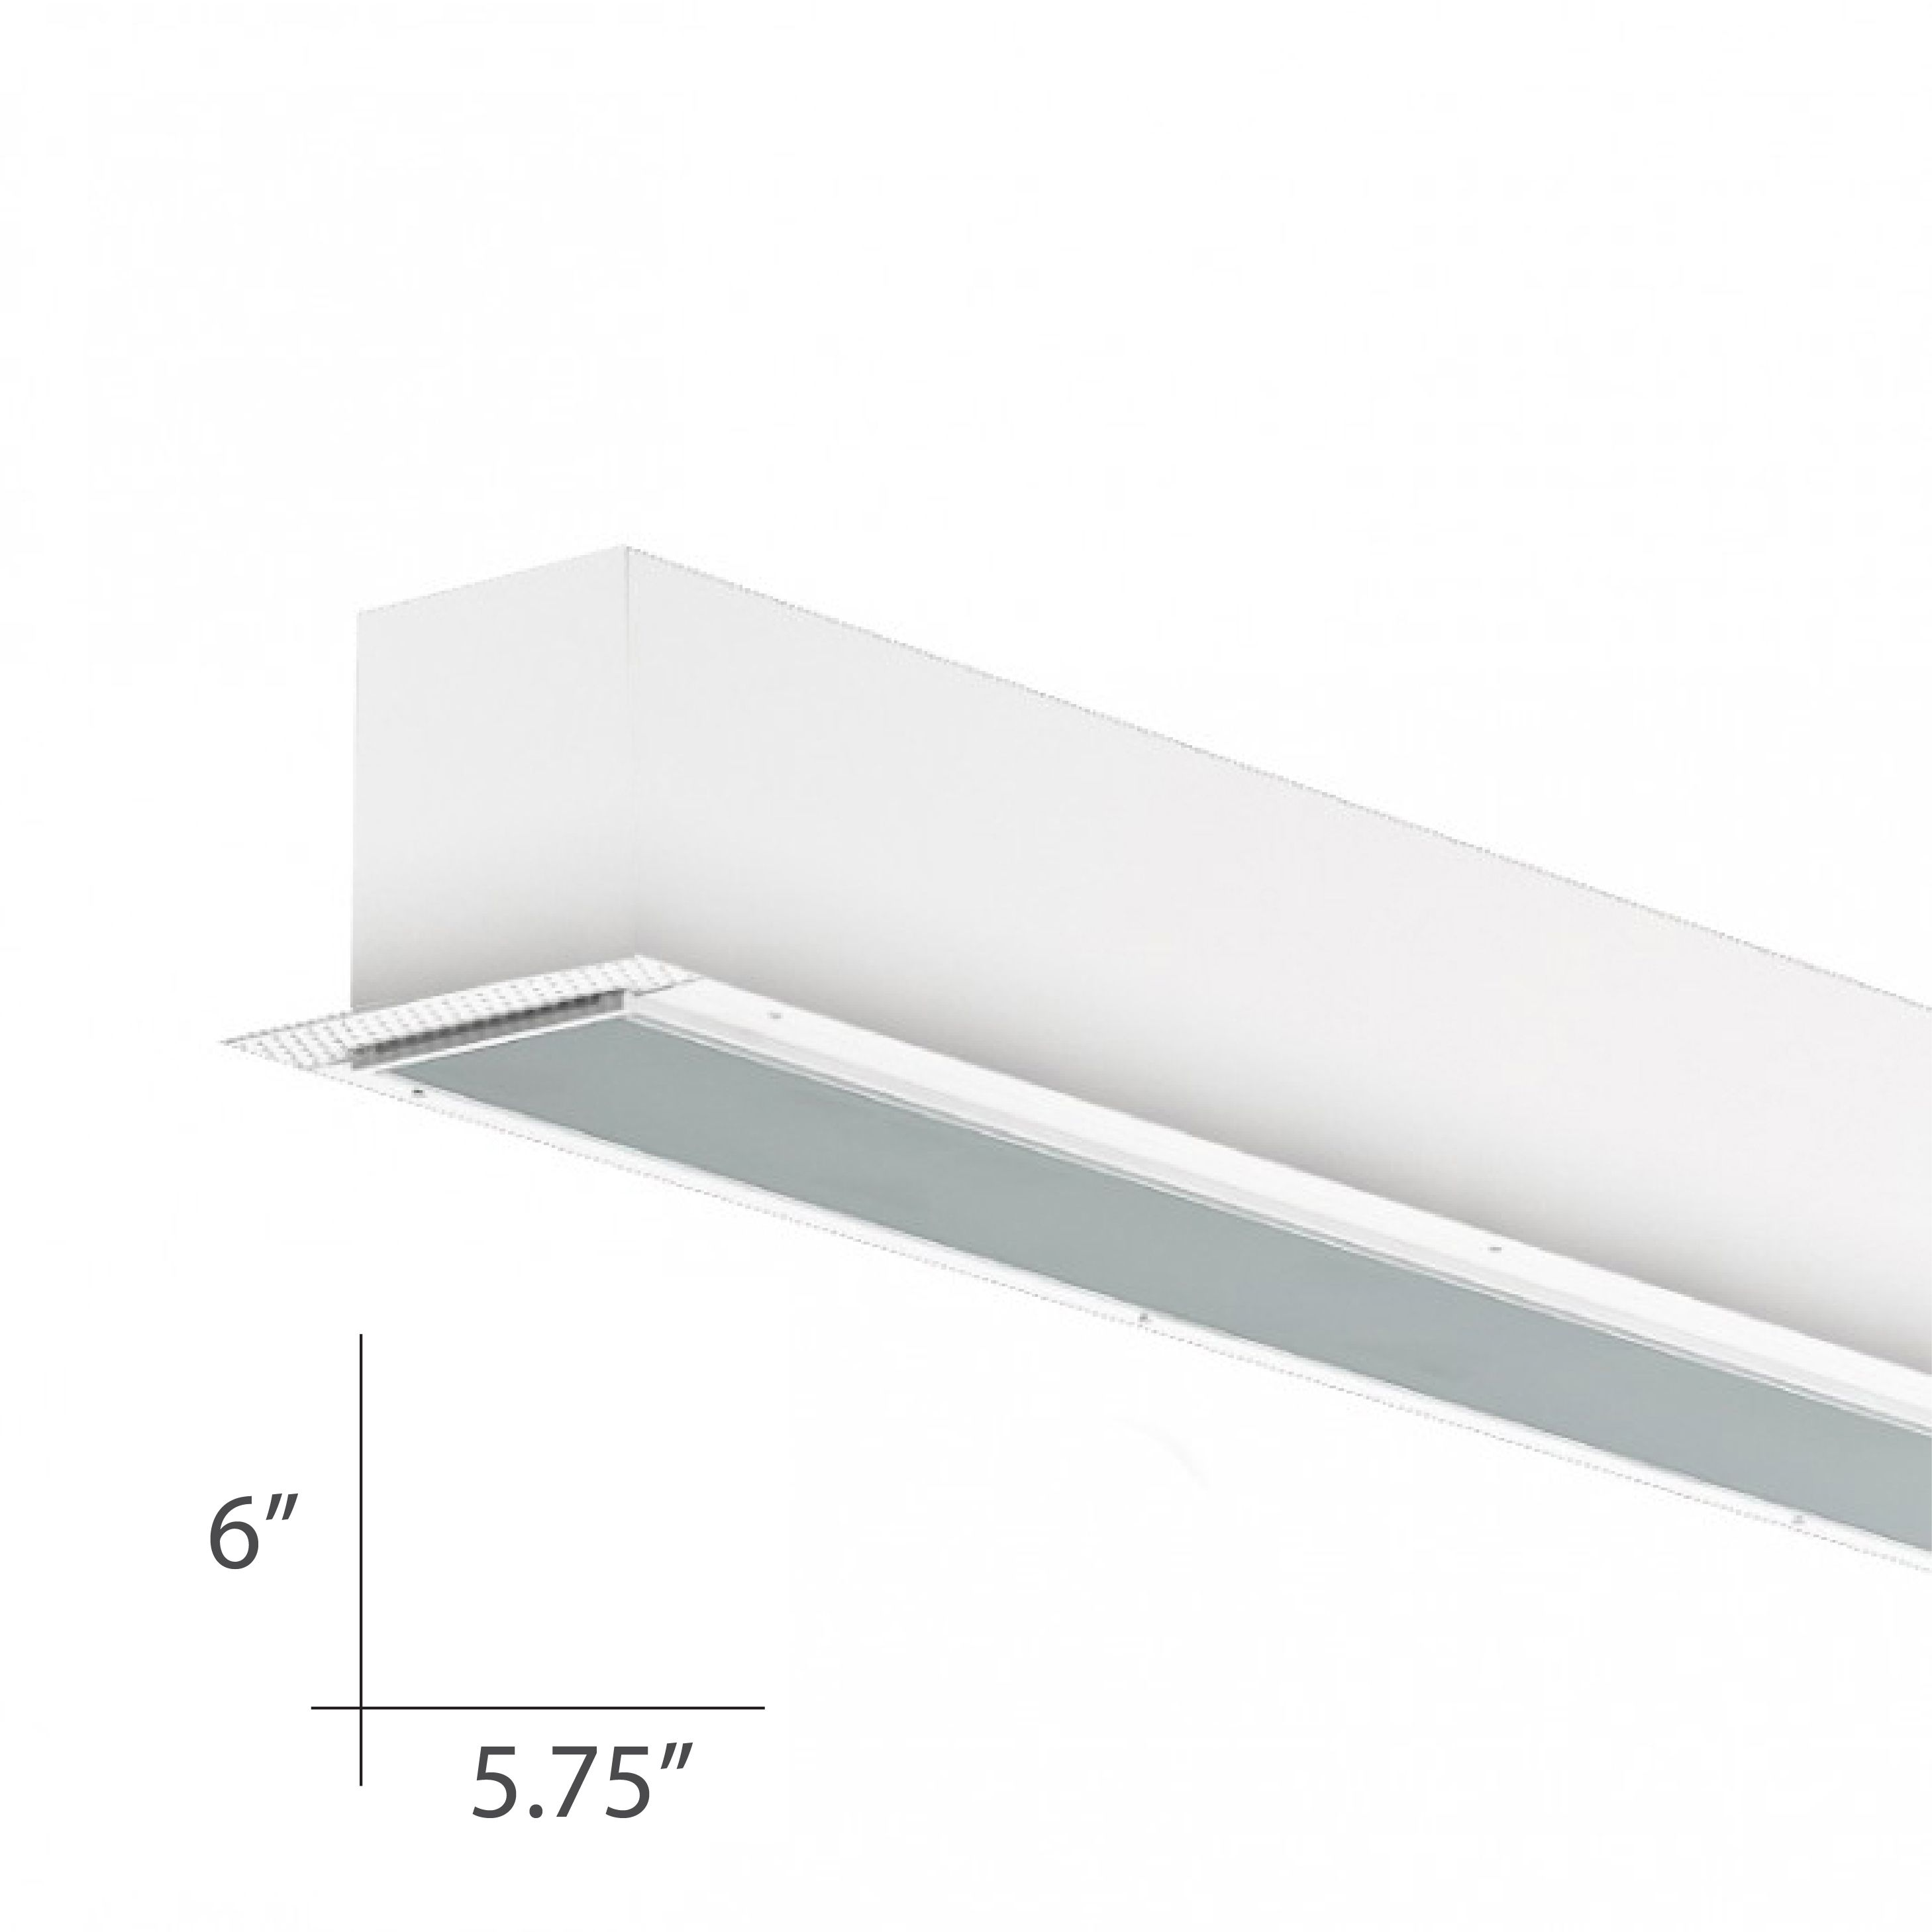 Alcon Lighting Beam 66 Series 7022-4 Architectural Linear ...